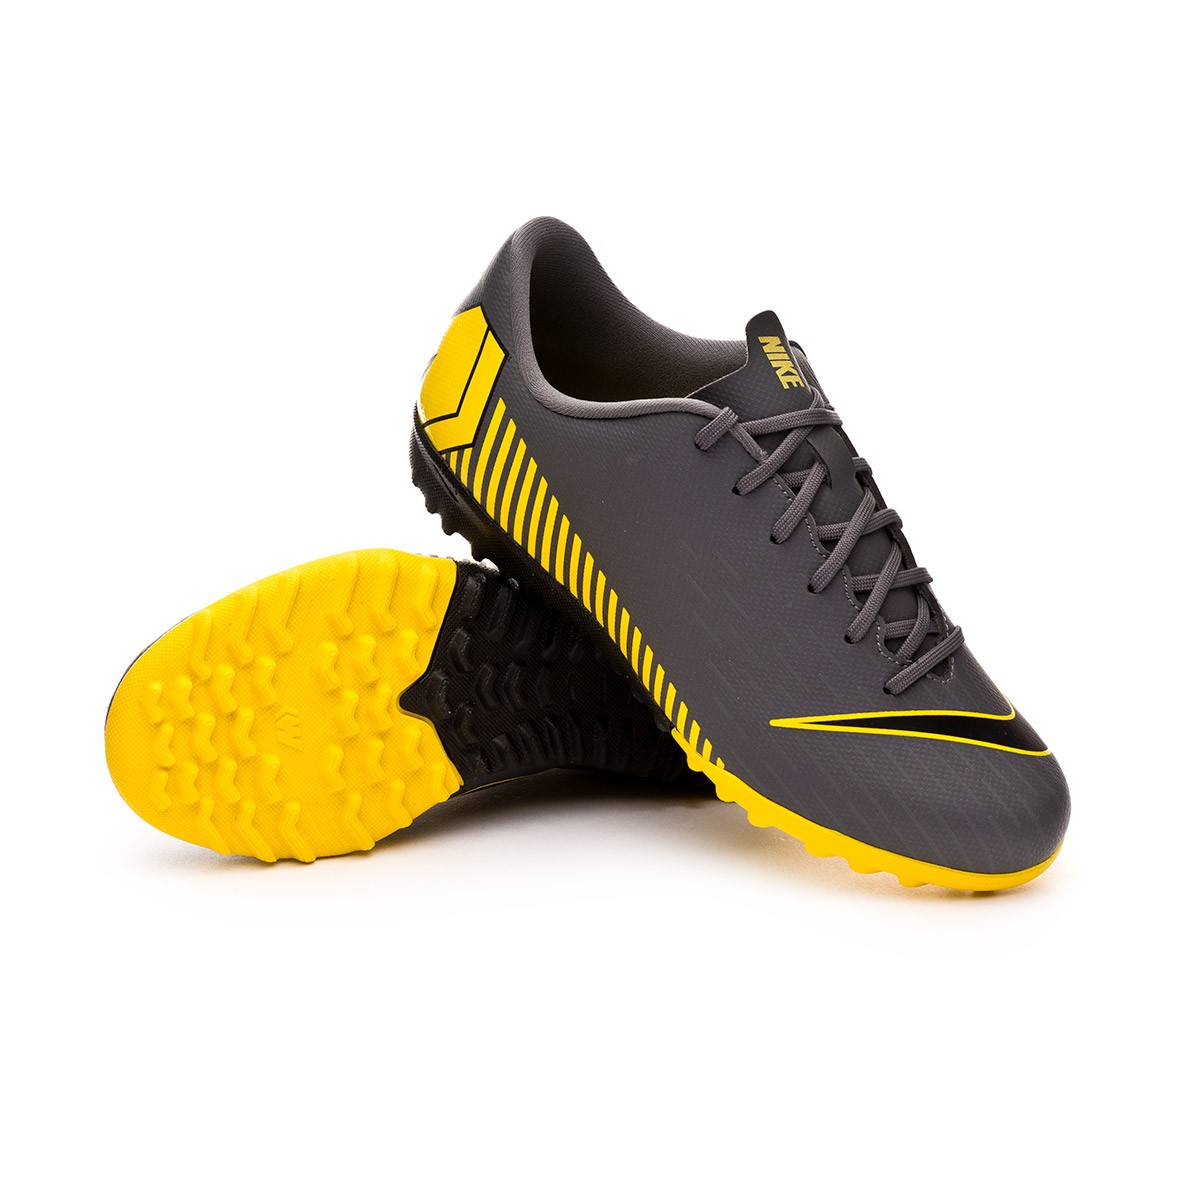 cheaper d357d 45502 Zapatilla Mercurial VaporX XII Academy Turf NIño Dark grey-Black-Optical  yellow